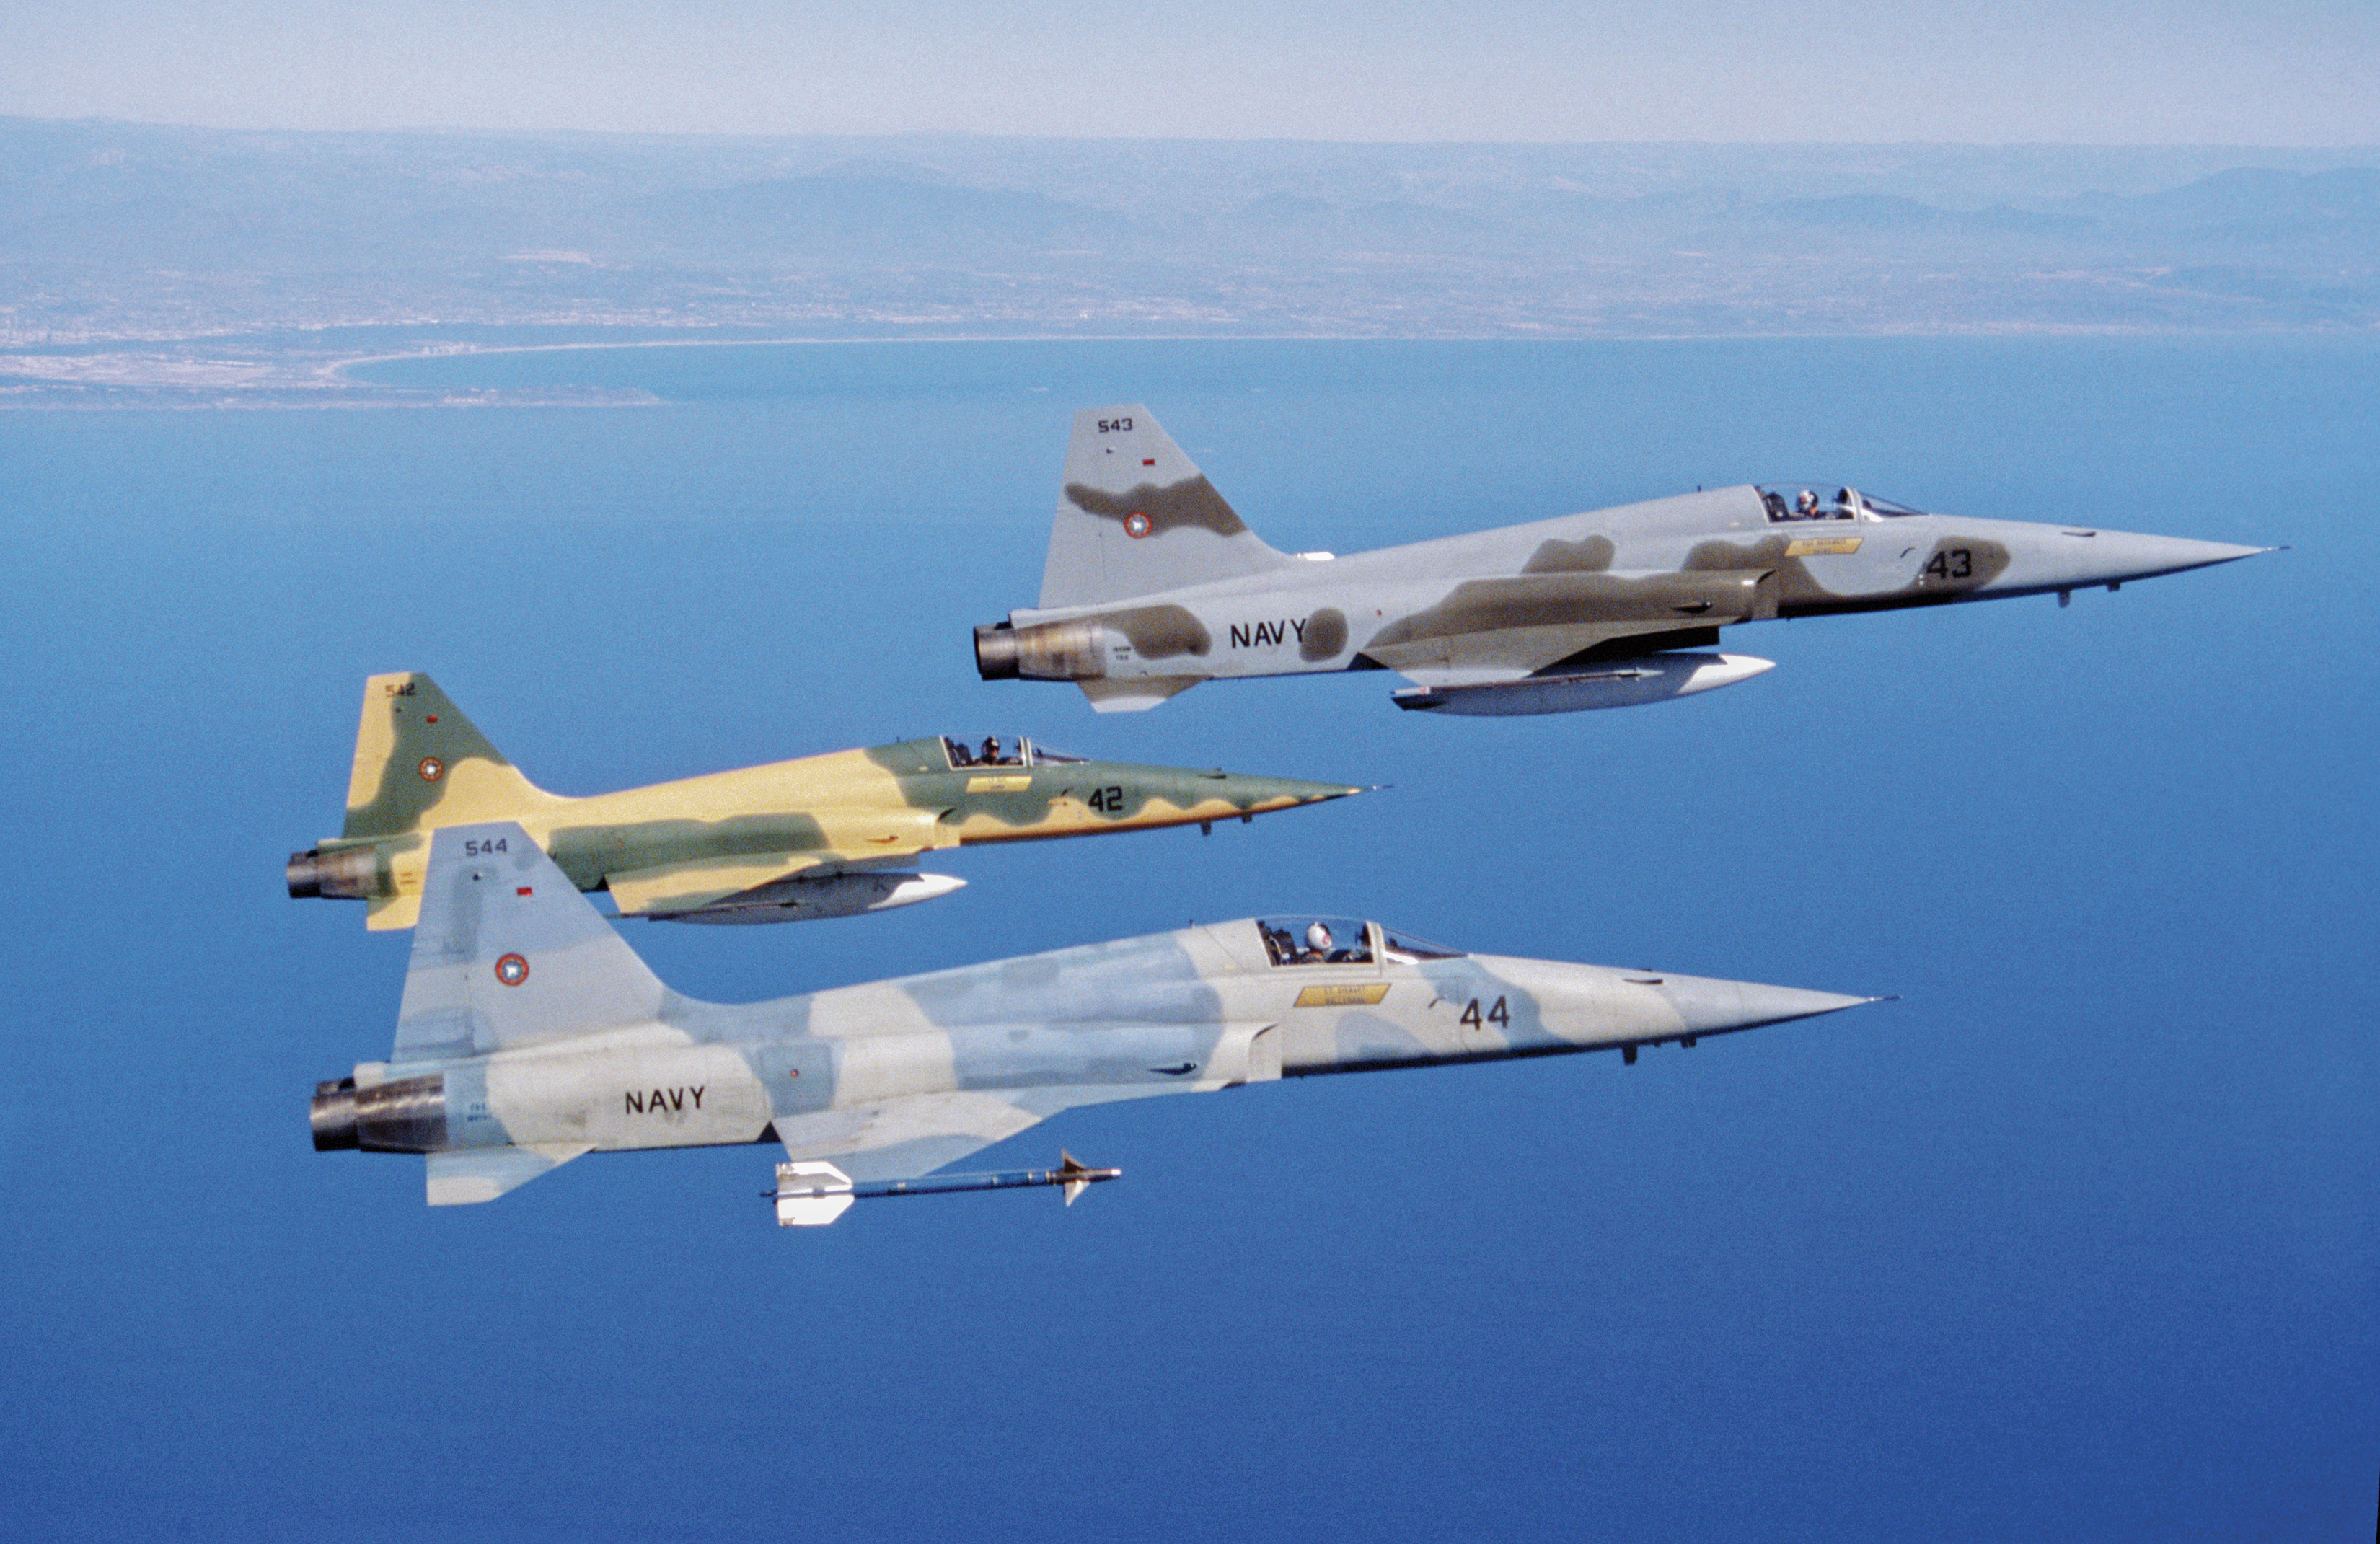 Three U.S. Navy F-5 Tiger II adversary aircraft in flight